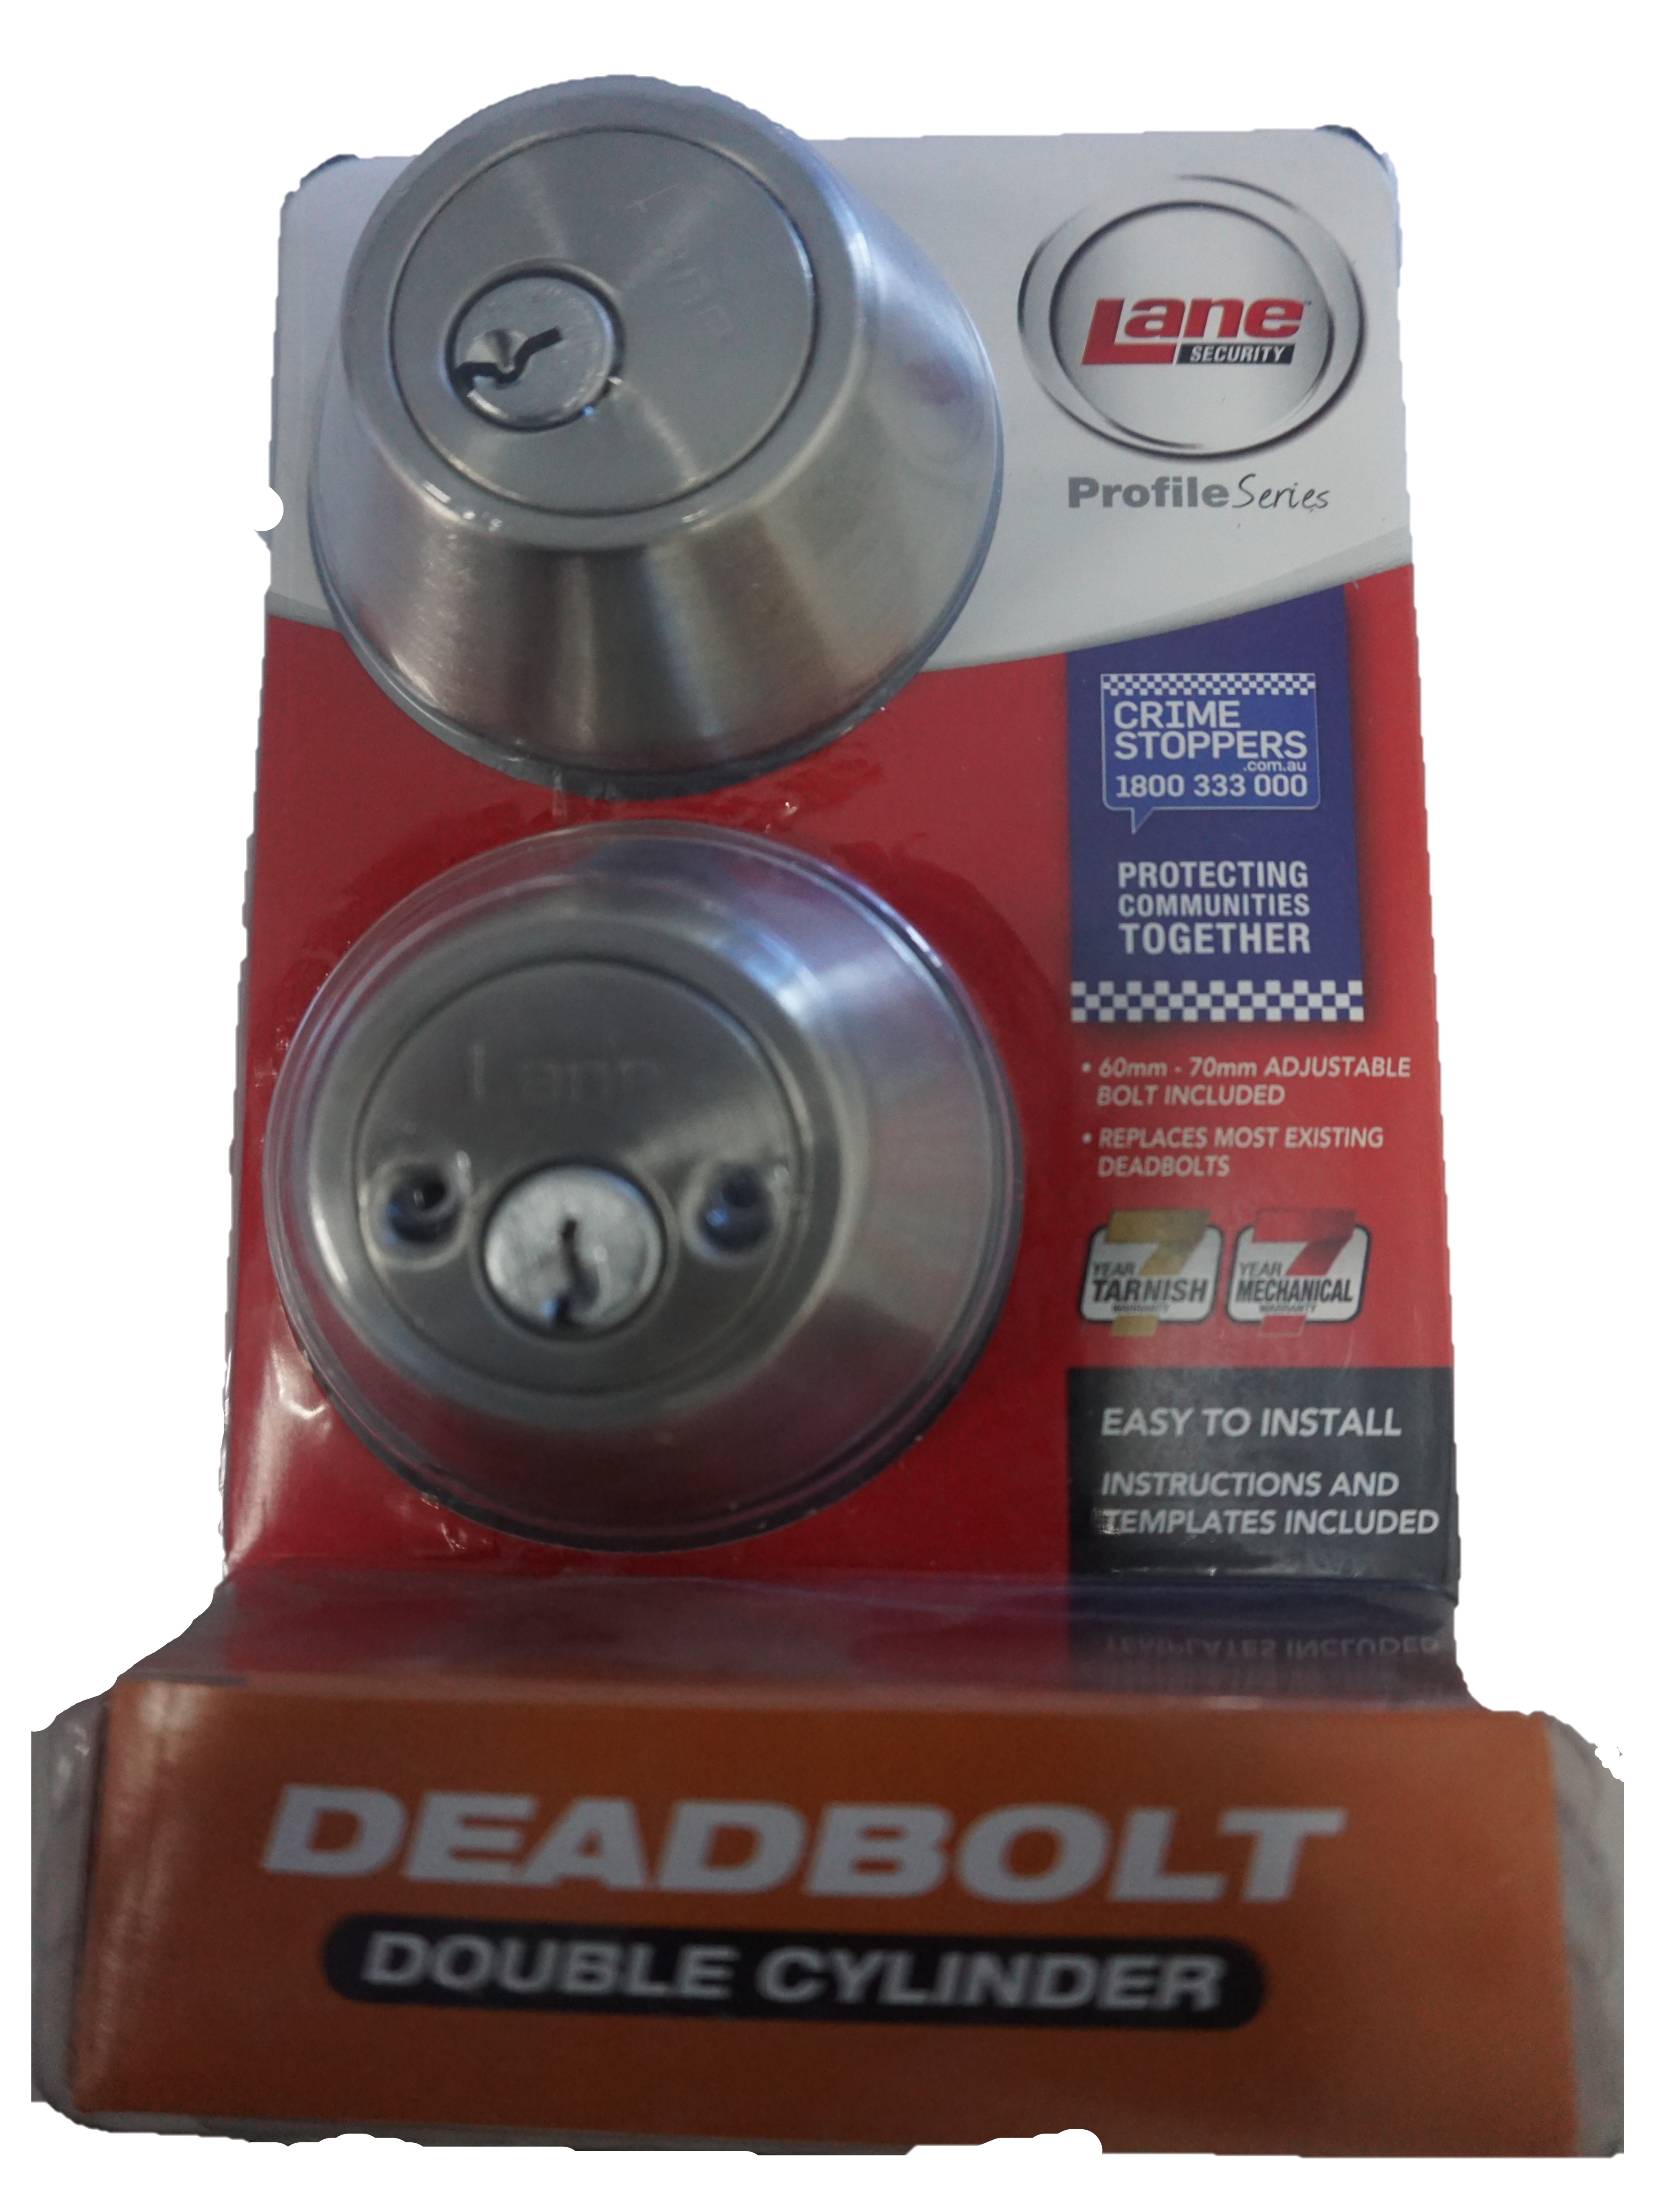 Lane Security DeadBolt double cylinder...